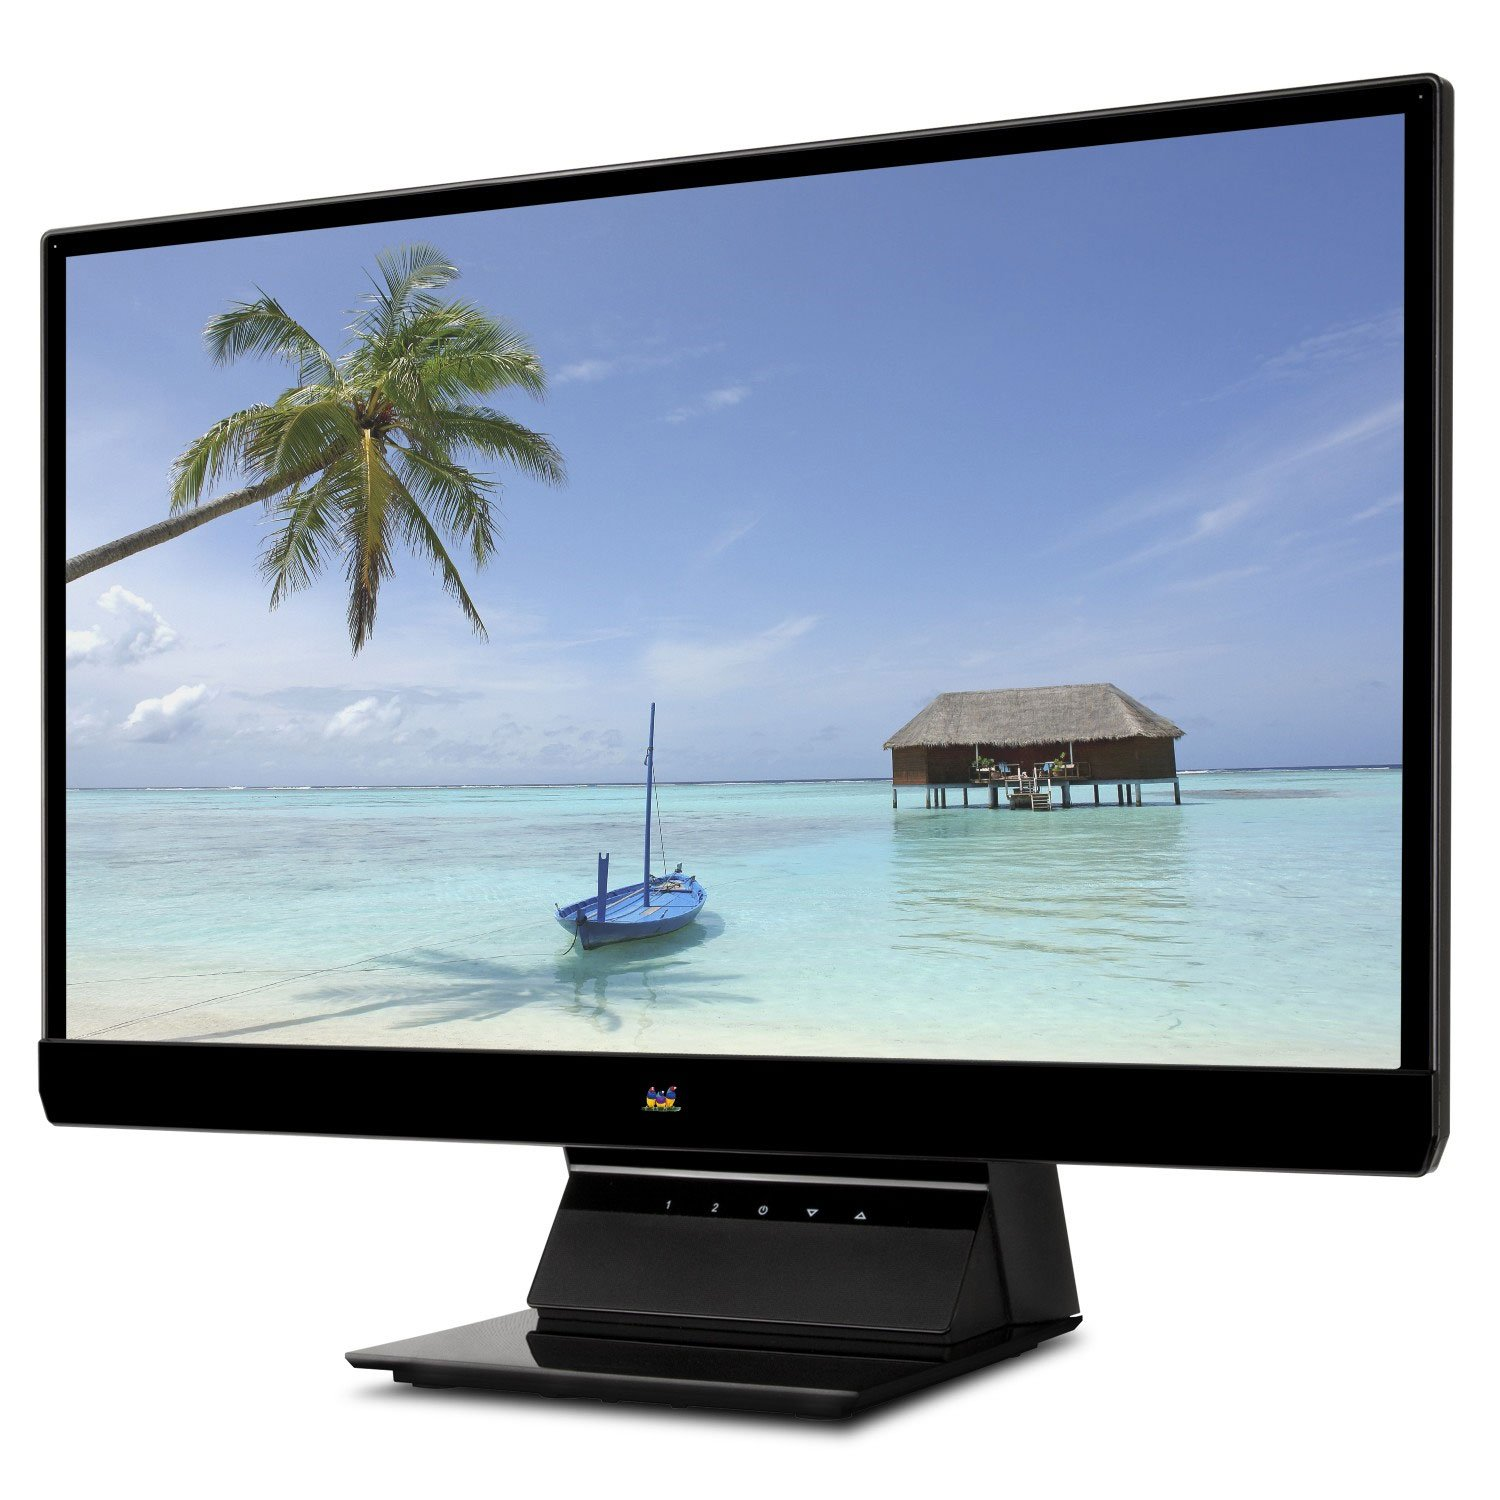 ViewSonic VX2270SMH-LED 22-Inch IPS LED Monitor (Frameless Design, Full HD 1080p, 30M:1 DCR, HDMI/DVI/VGA) $125.99